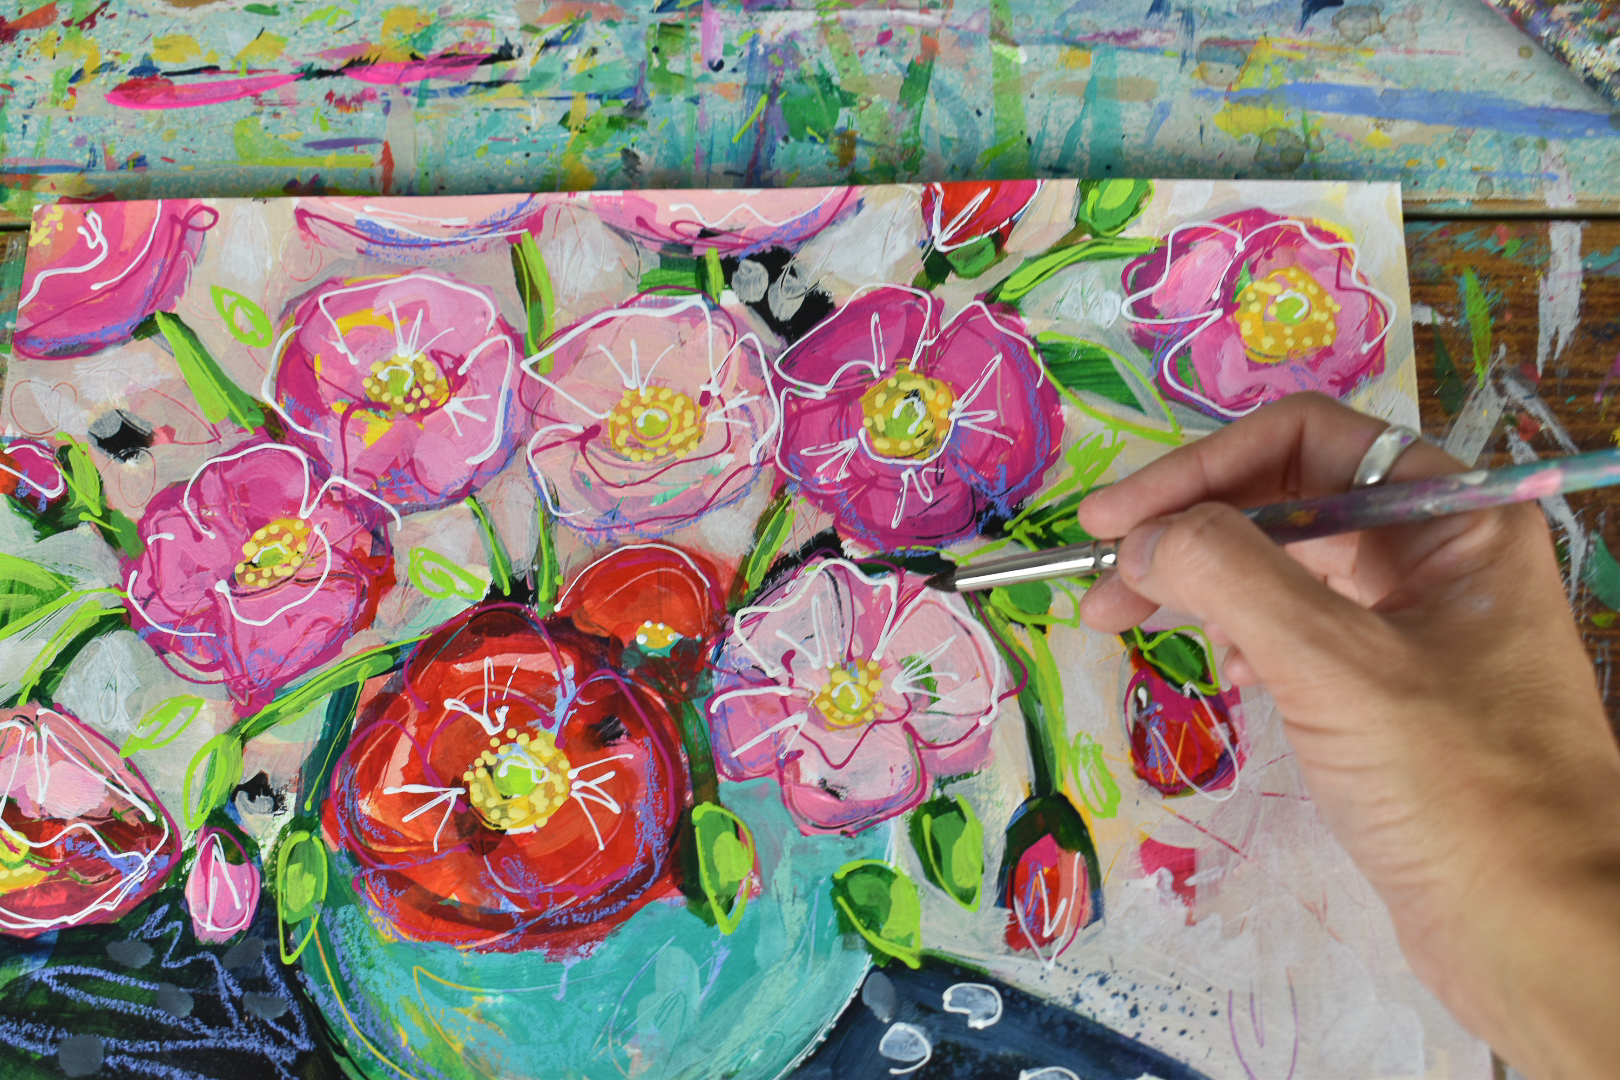 boho_poppies_painting_flowers_daisyfaithart_4.jpg